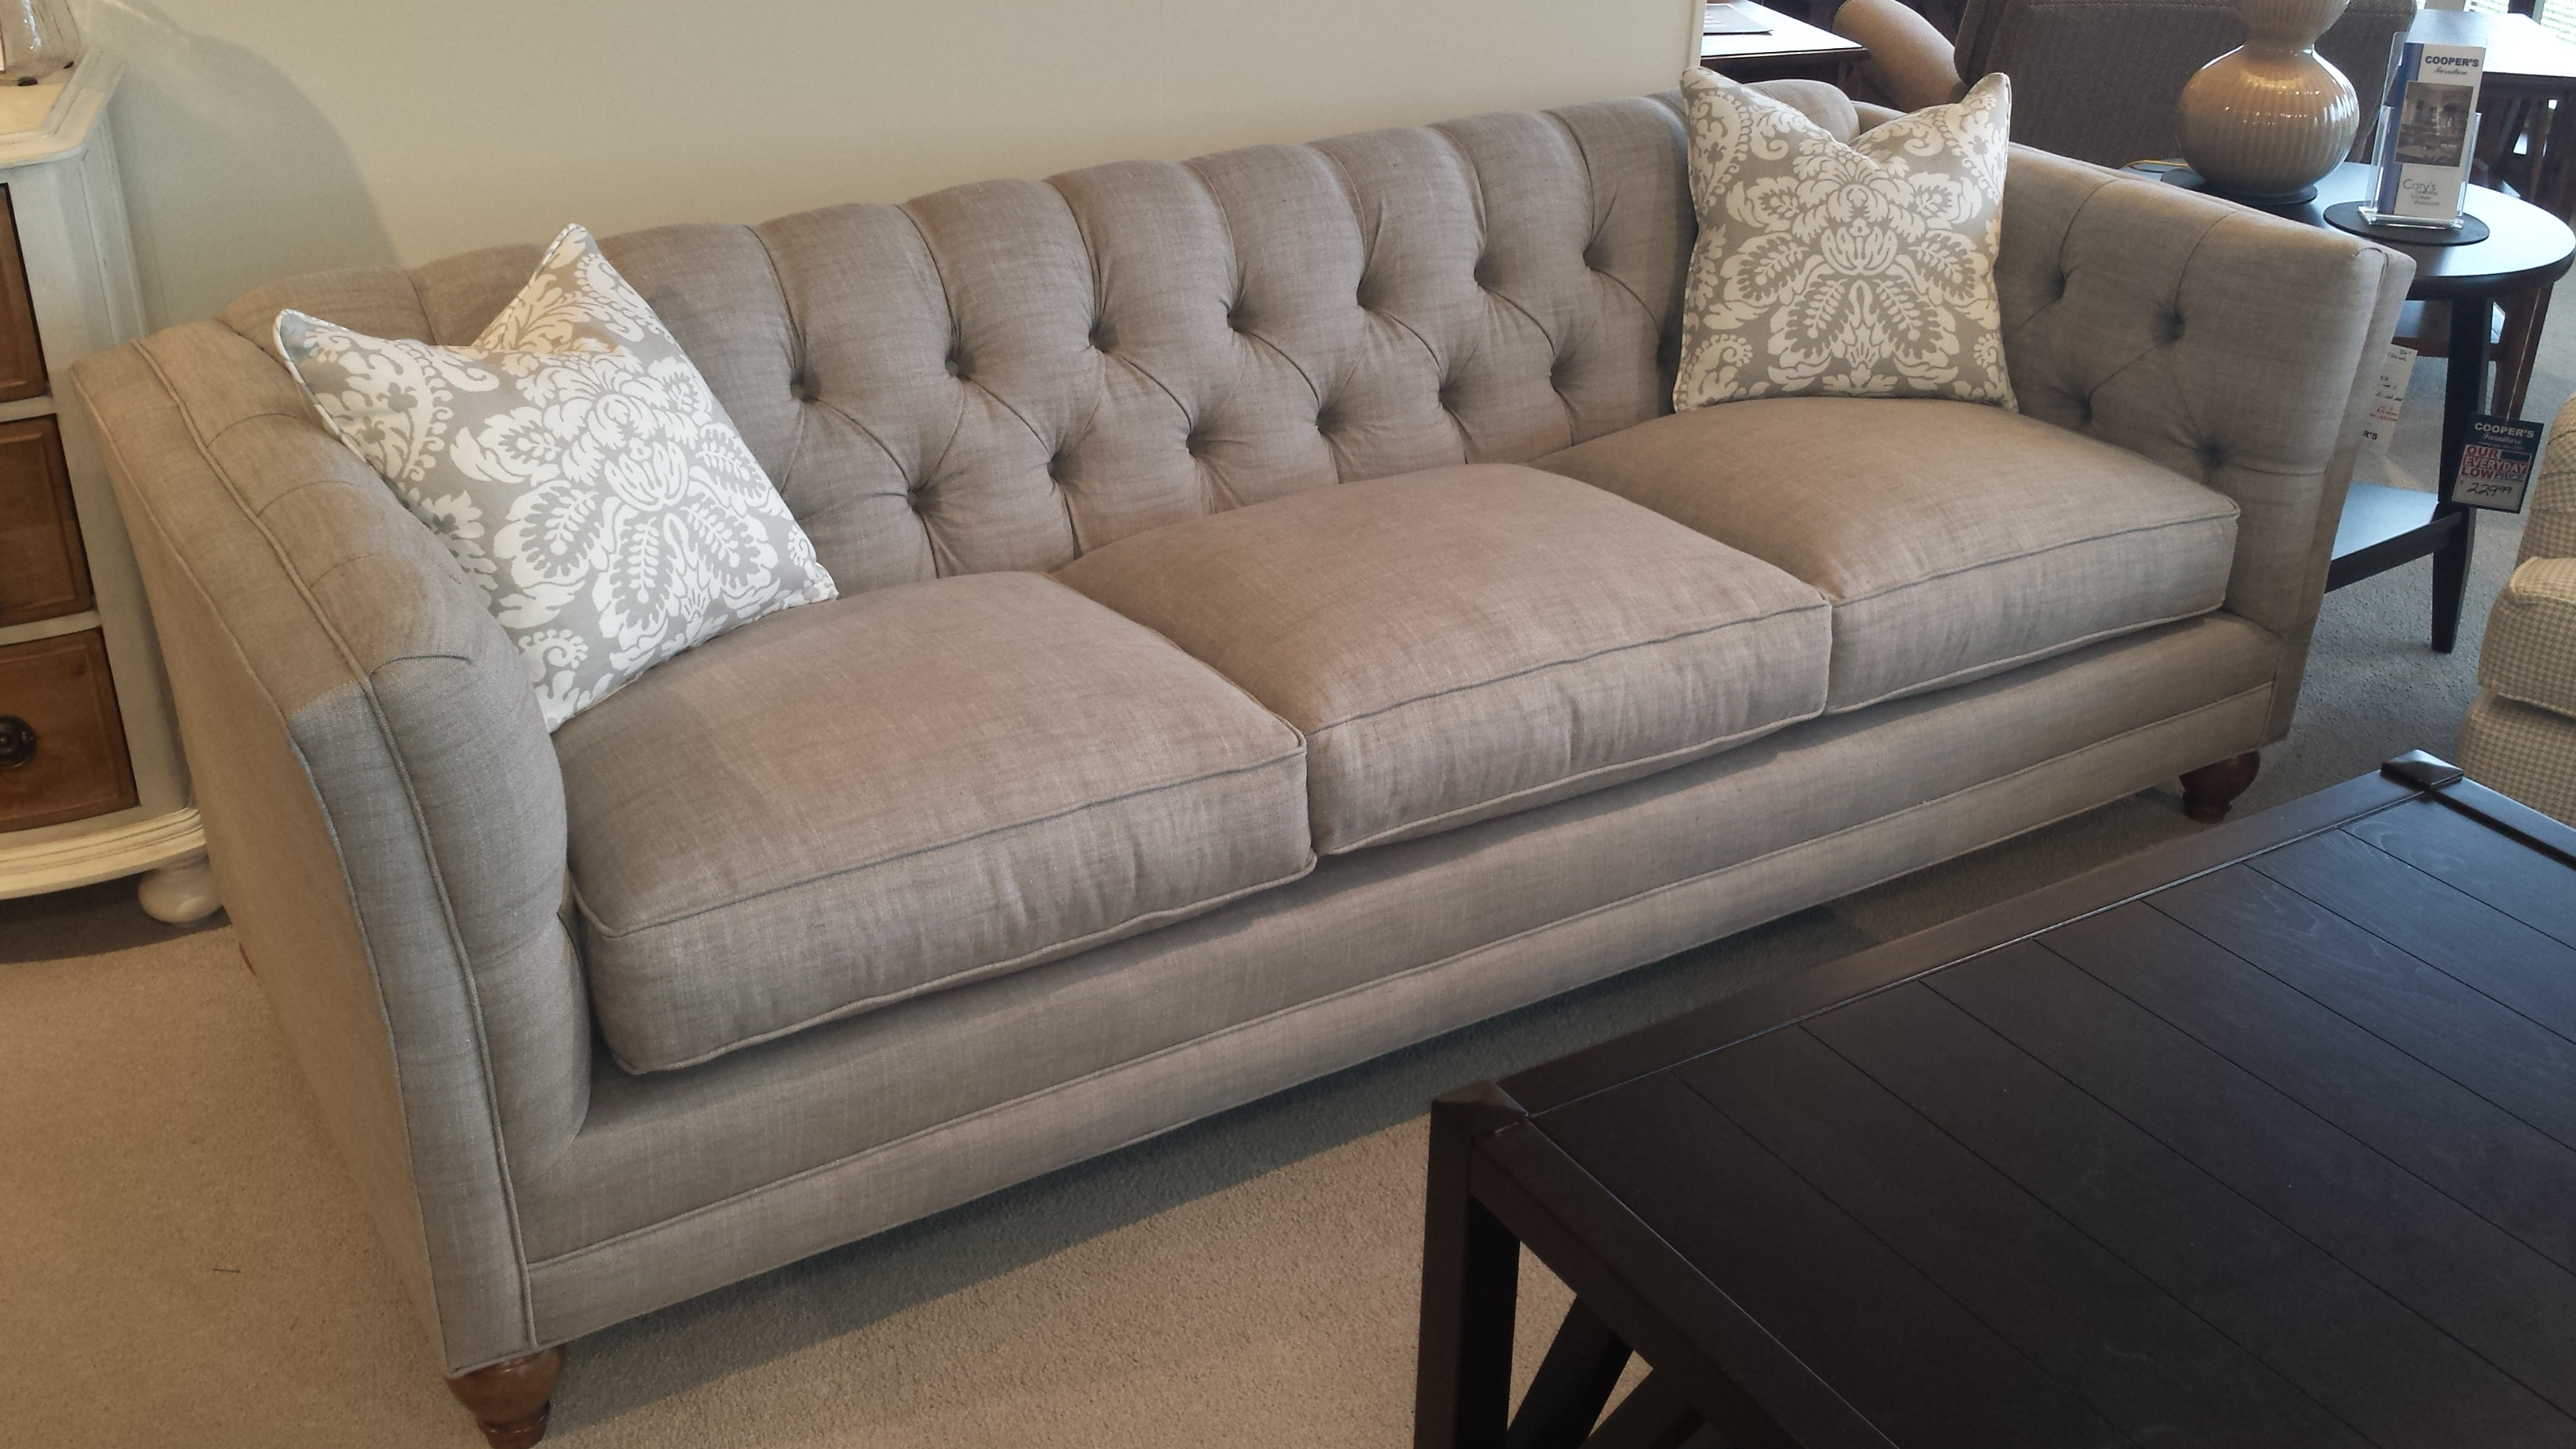 leather sofas tulsa furniture row sofa mart return policy living room cary nc | sofas, recliners, sectionals